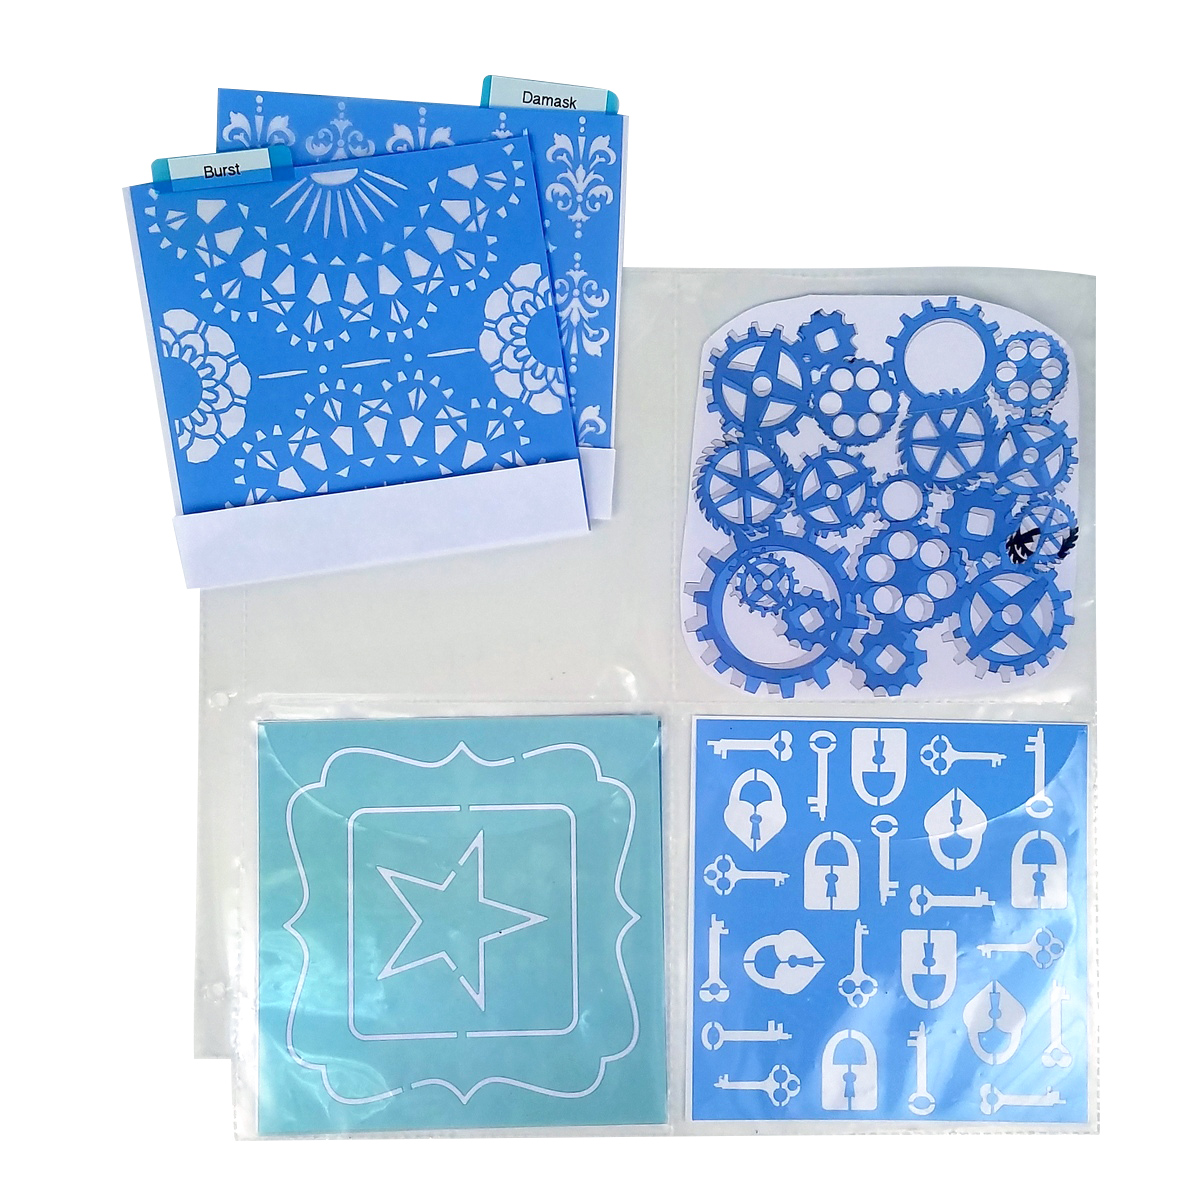 Organize 6x6 stencils for card making and scrapbooking.Organizers for stencils